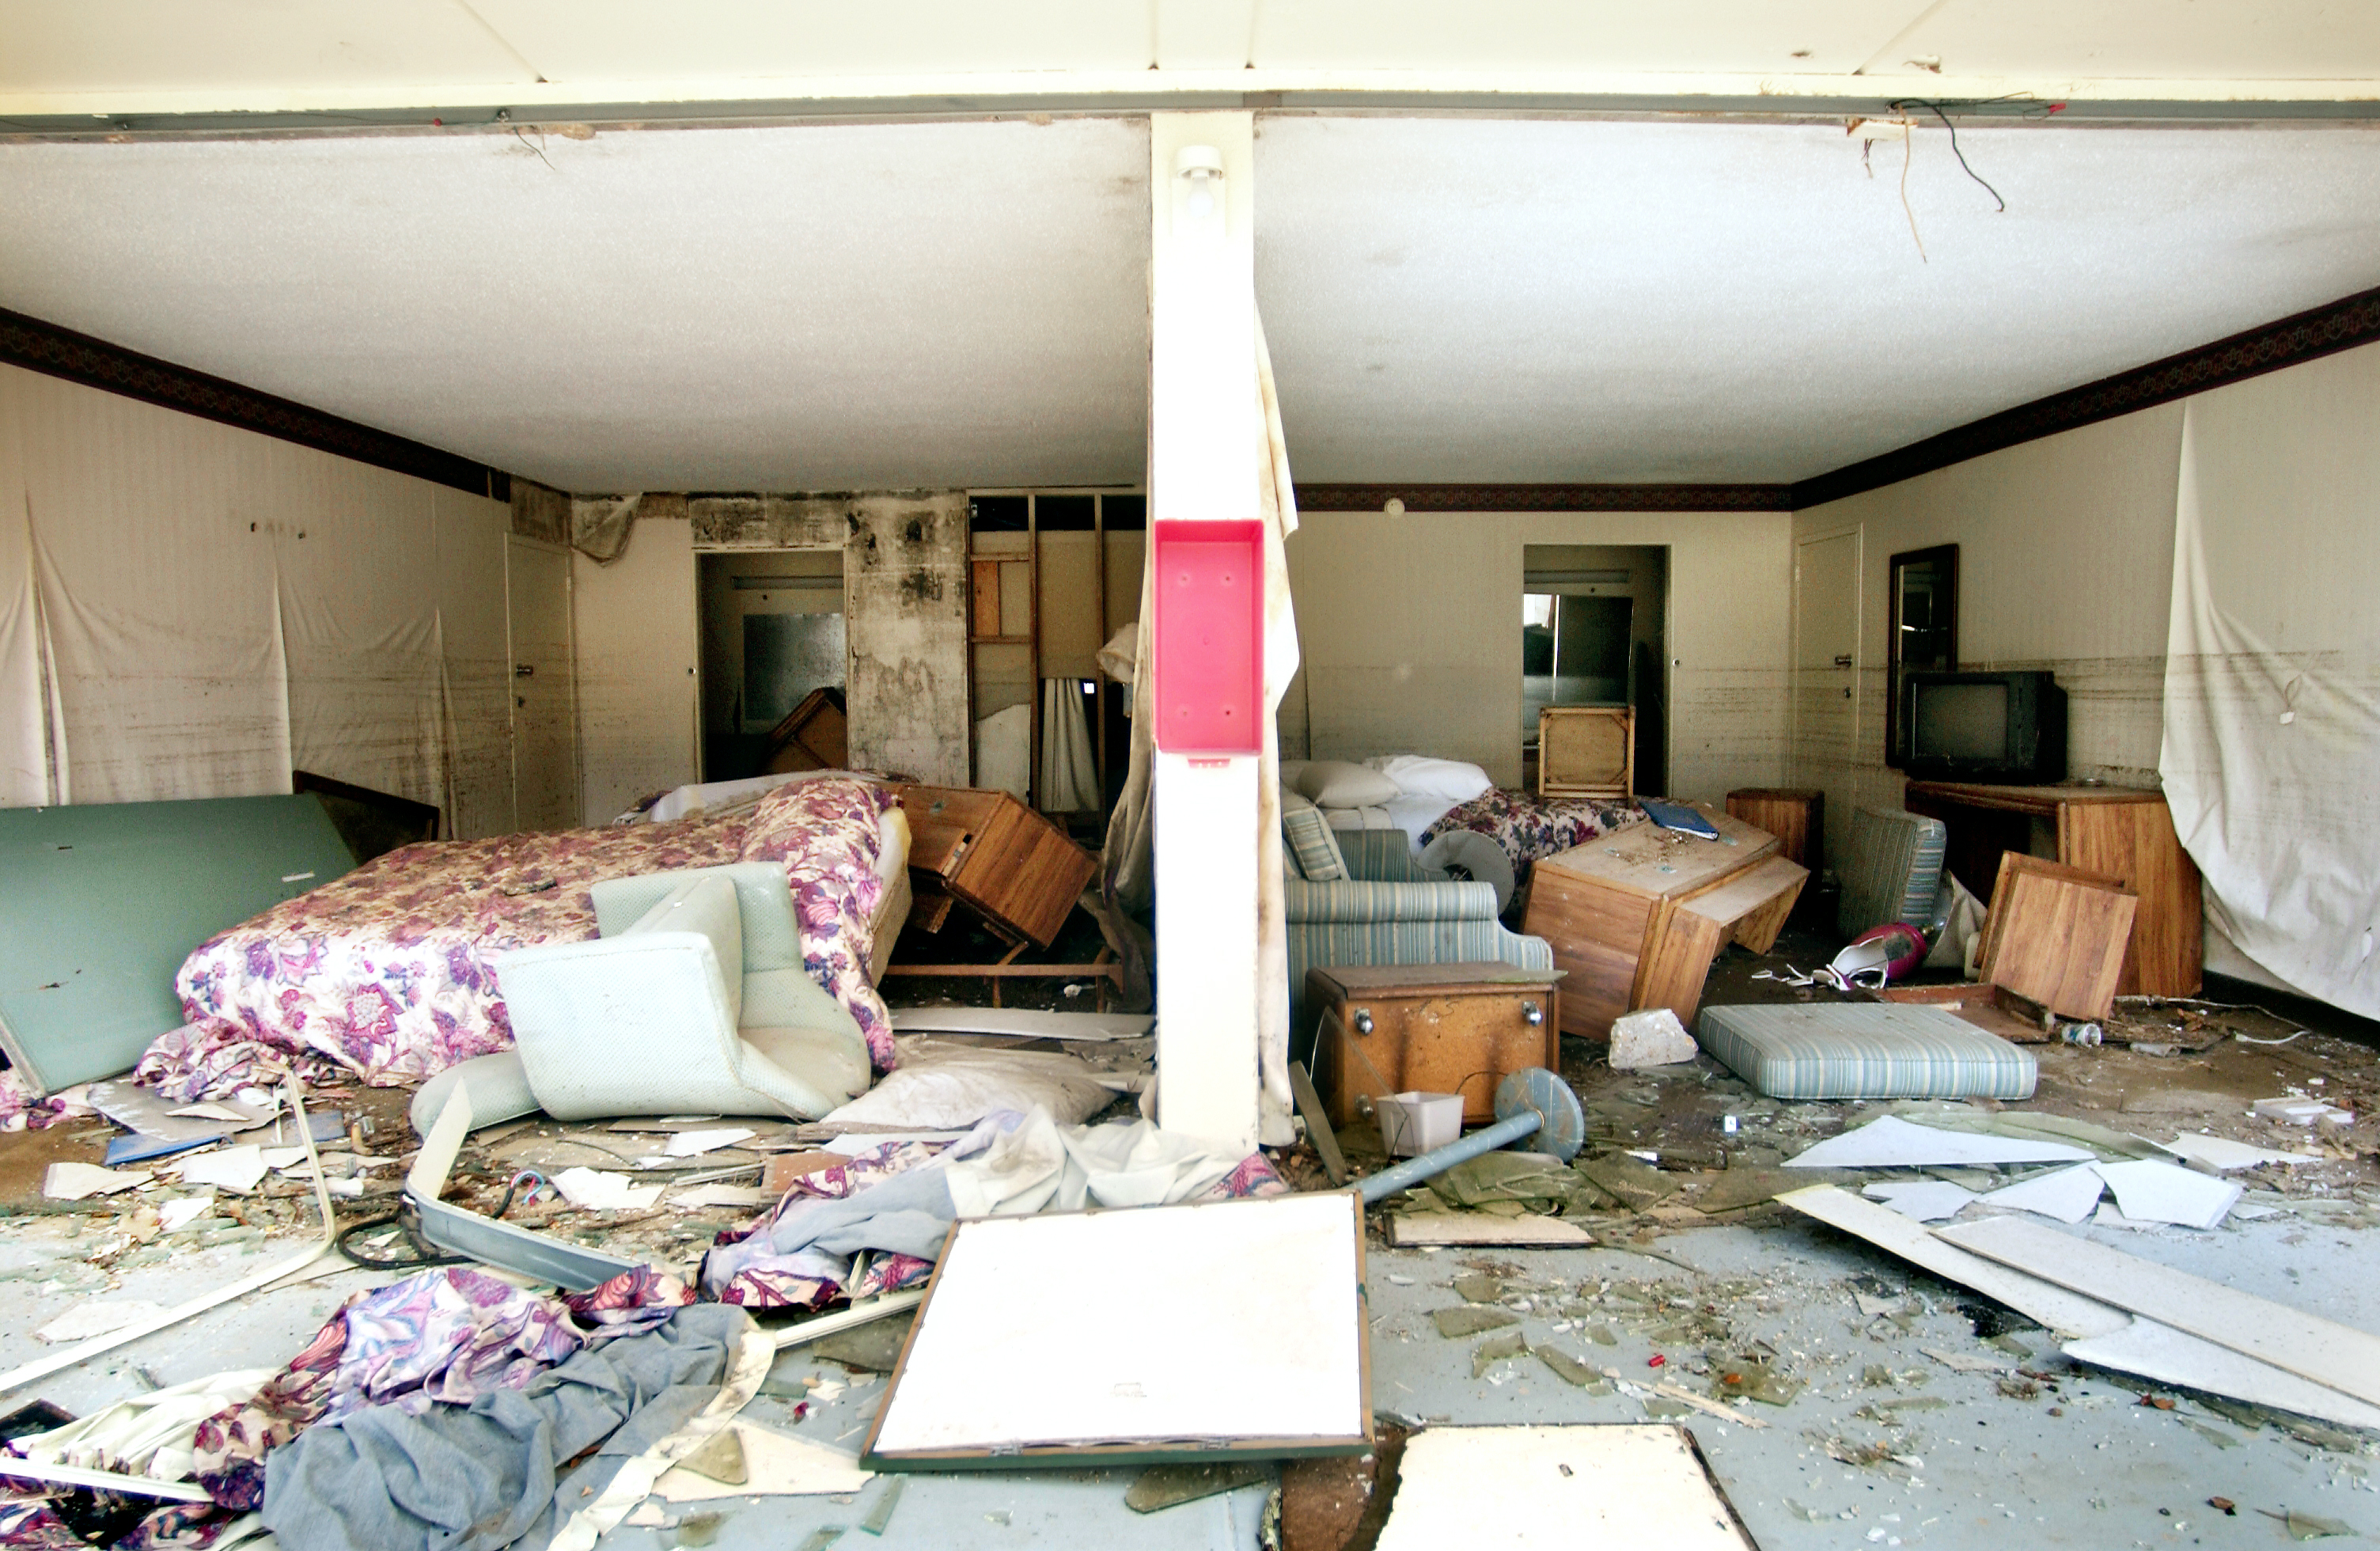 Hurricane Damage Homeowners Residential Insurance Claim Goodman-Gable-Gould/Adjusters International